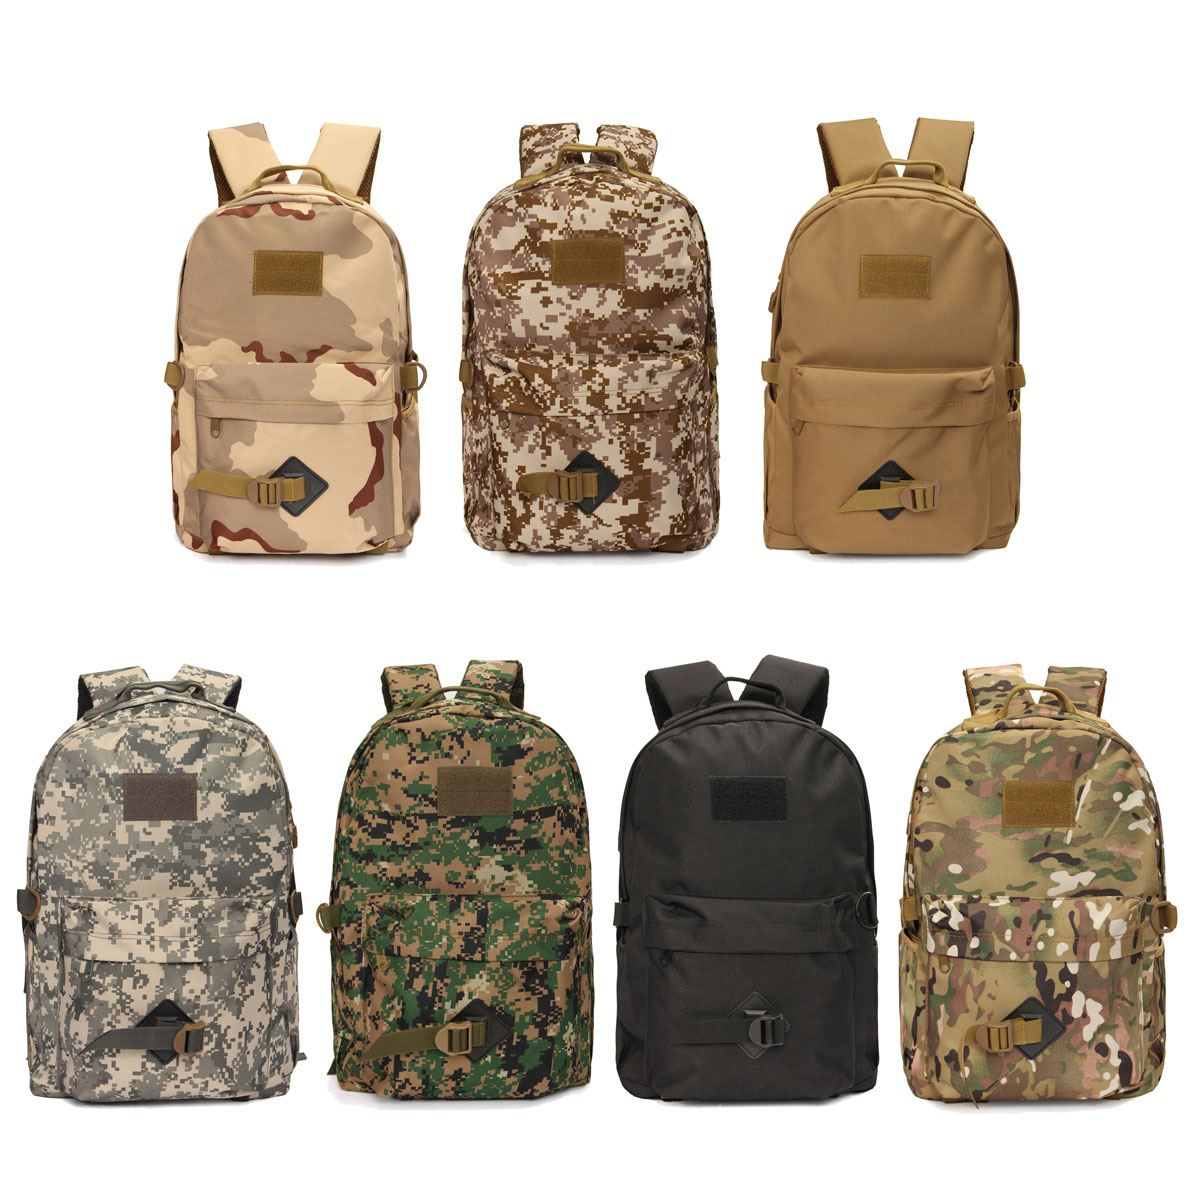 30L Outdoor Tactical Backpack Camouflage bag Shoulder Nylon Bag Waterproof Rucksack backpack For Camping Hiking Travel Climbing sports travel airsoft tactical knapsack camping climbing backpack 600d nylon hiking hunting vintage military bag camouflage